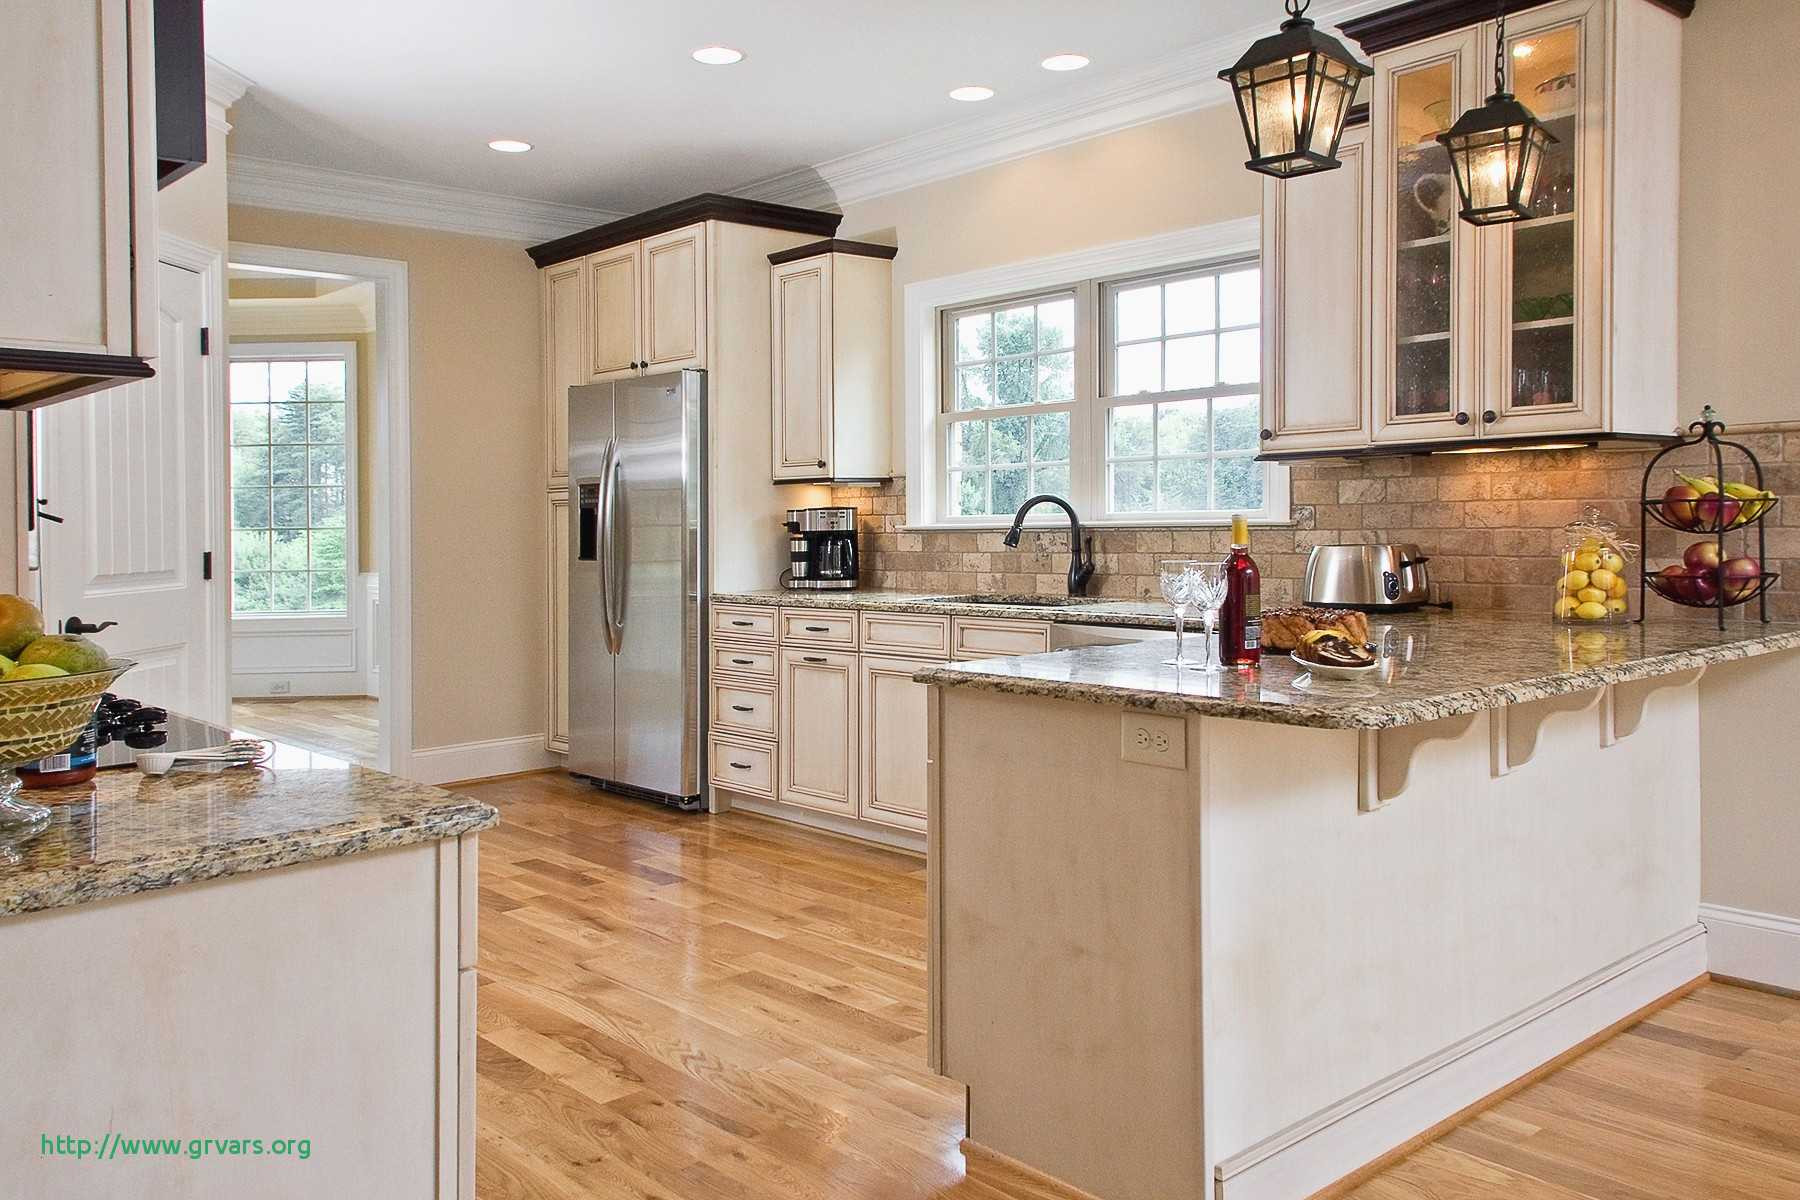 dark hardwood floors with oak cabinets of 17 meilleur de what color cabinets go with light wood floors ideas inside what color cabinets go with light wood floors a‰lagant kitchen light cabinets new kitchen cabinet color